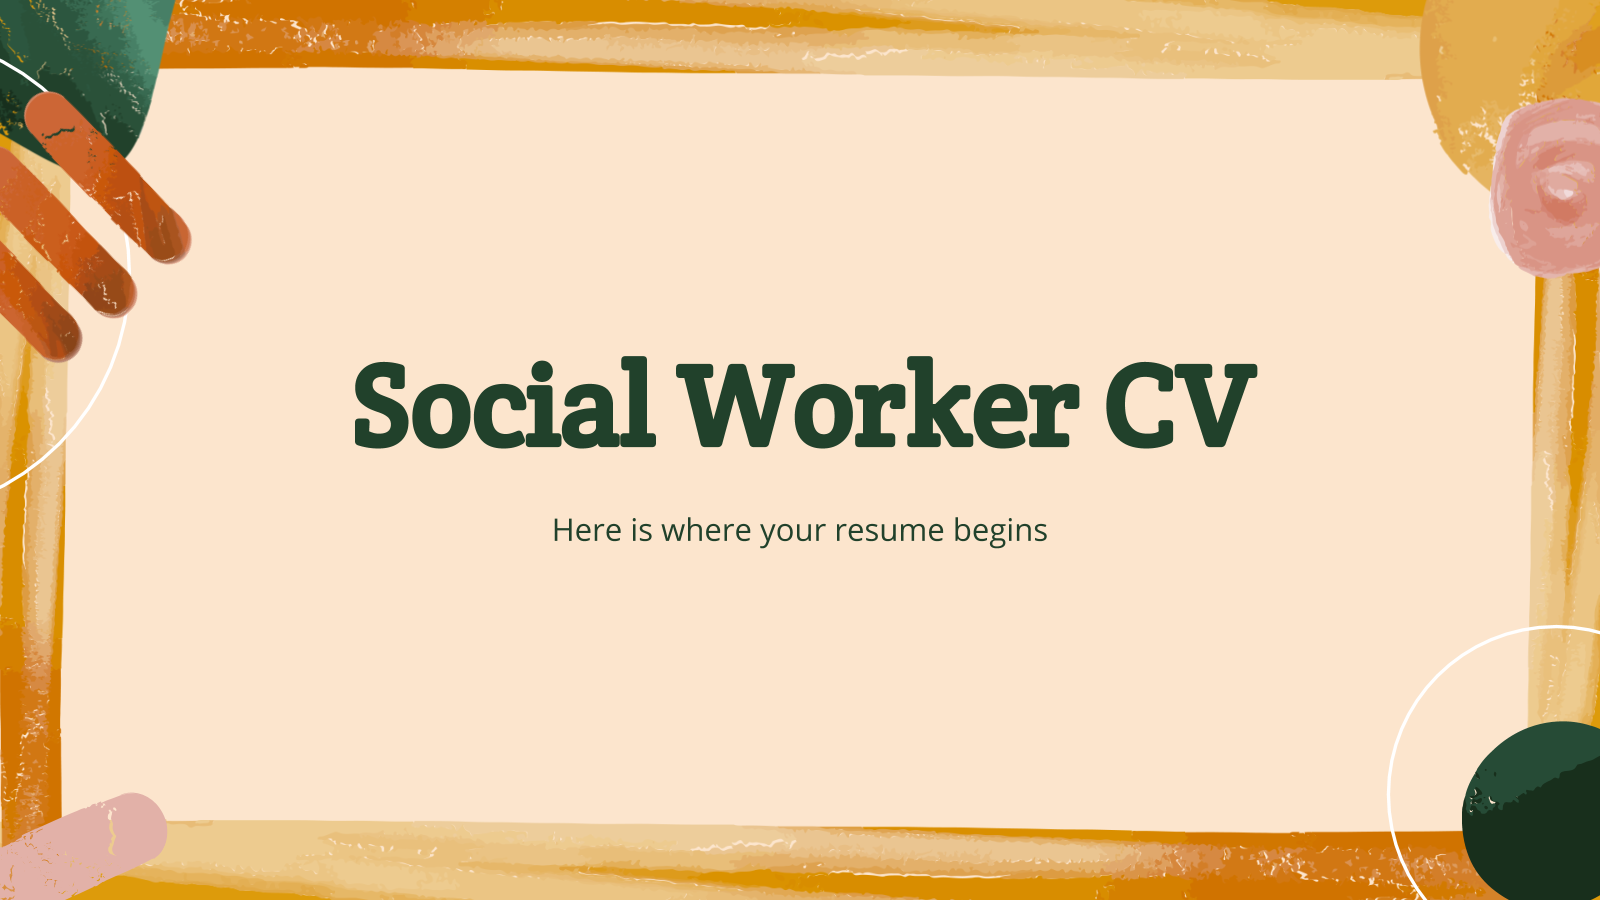 Social Worker CV presentation template